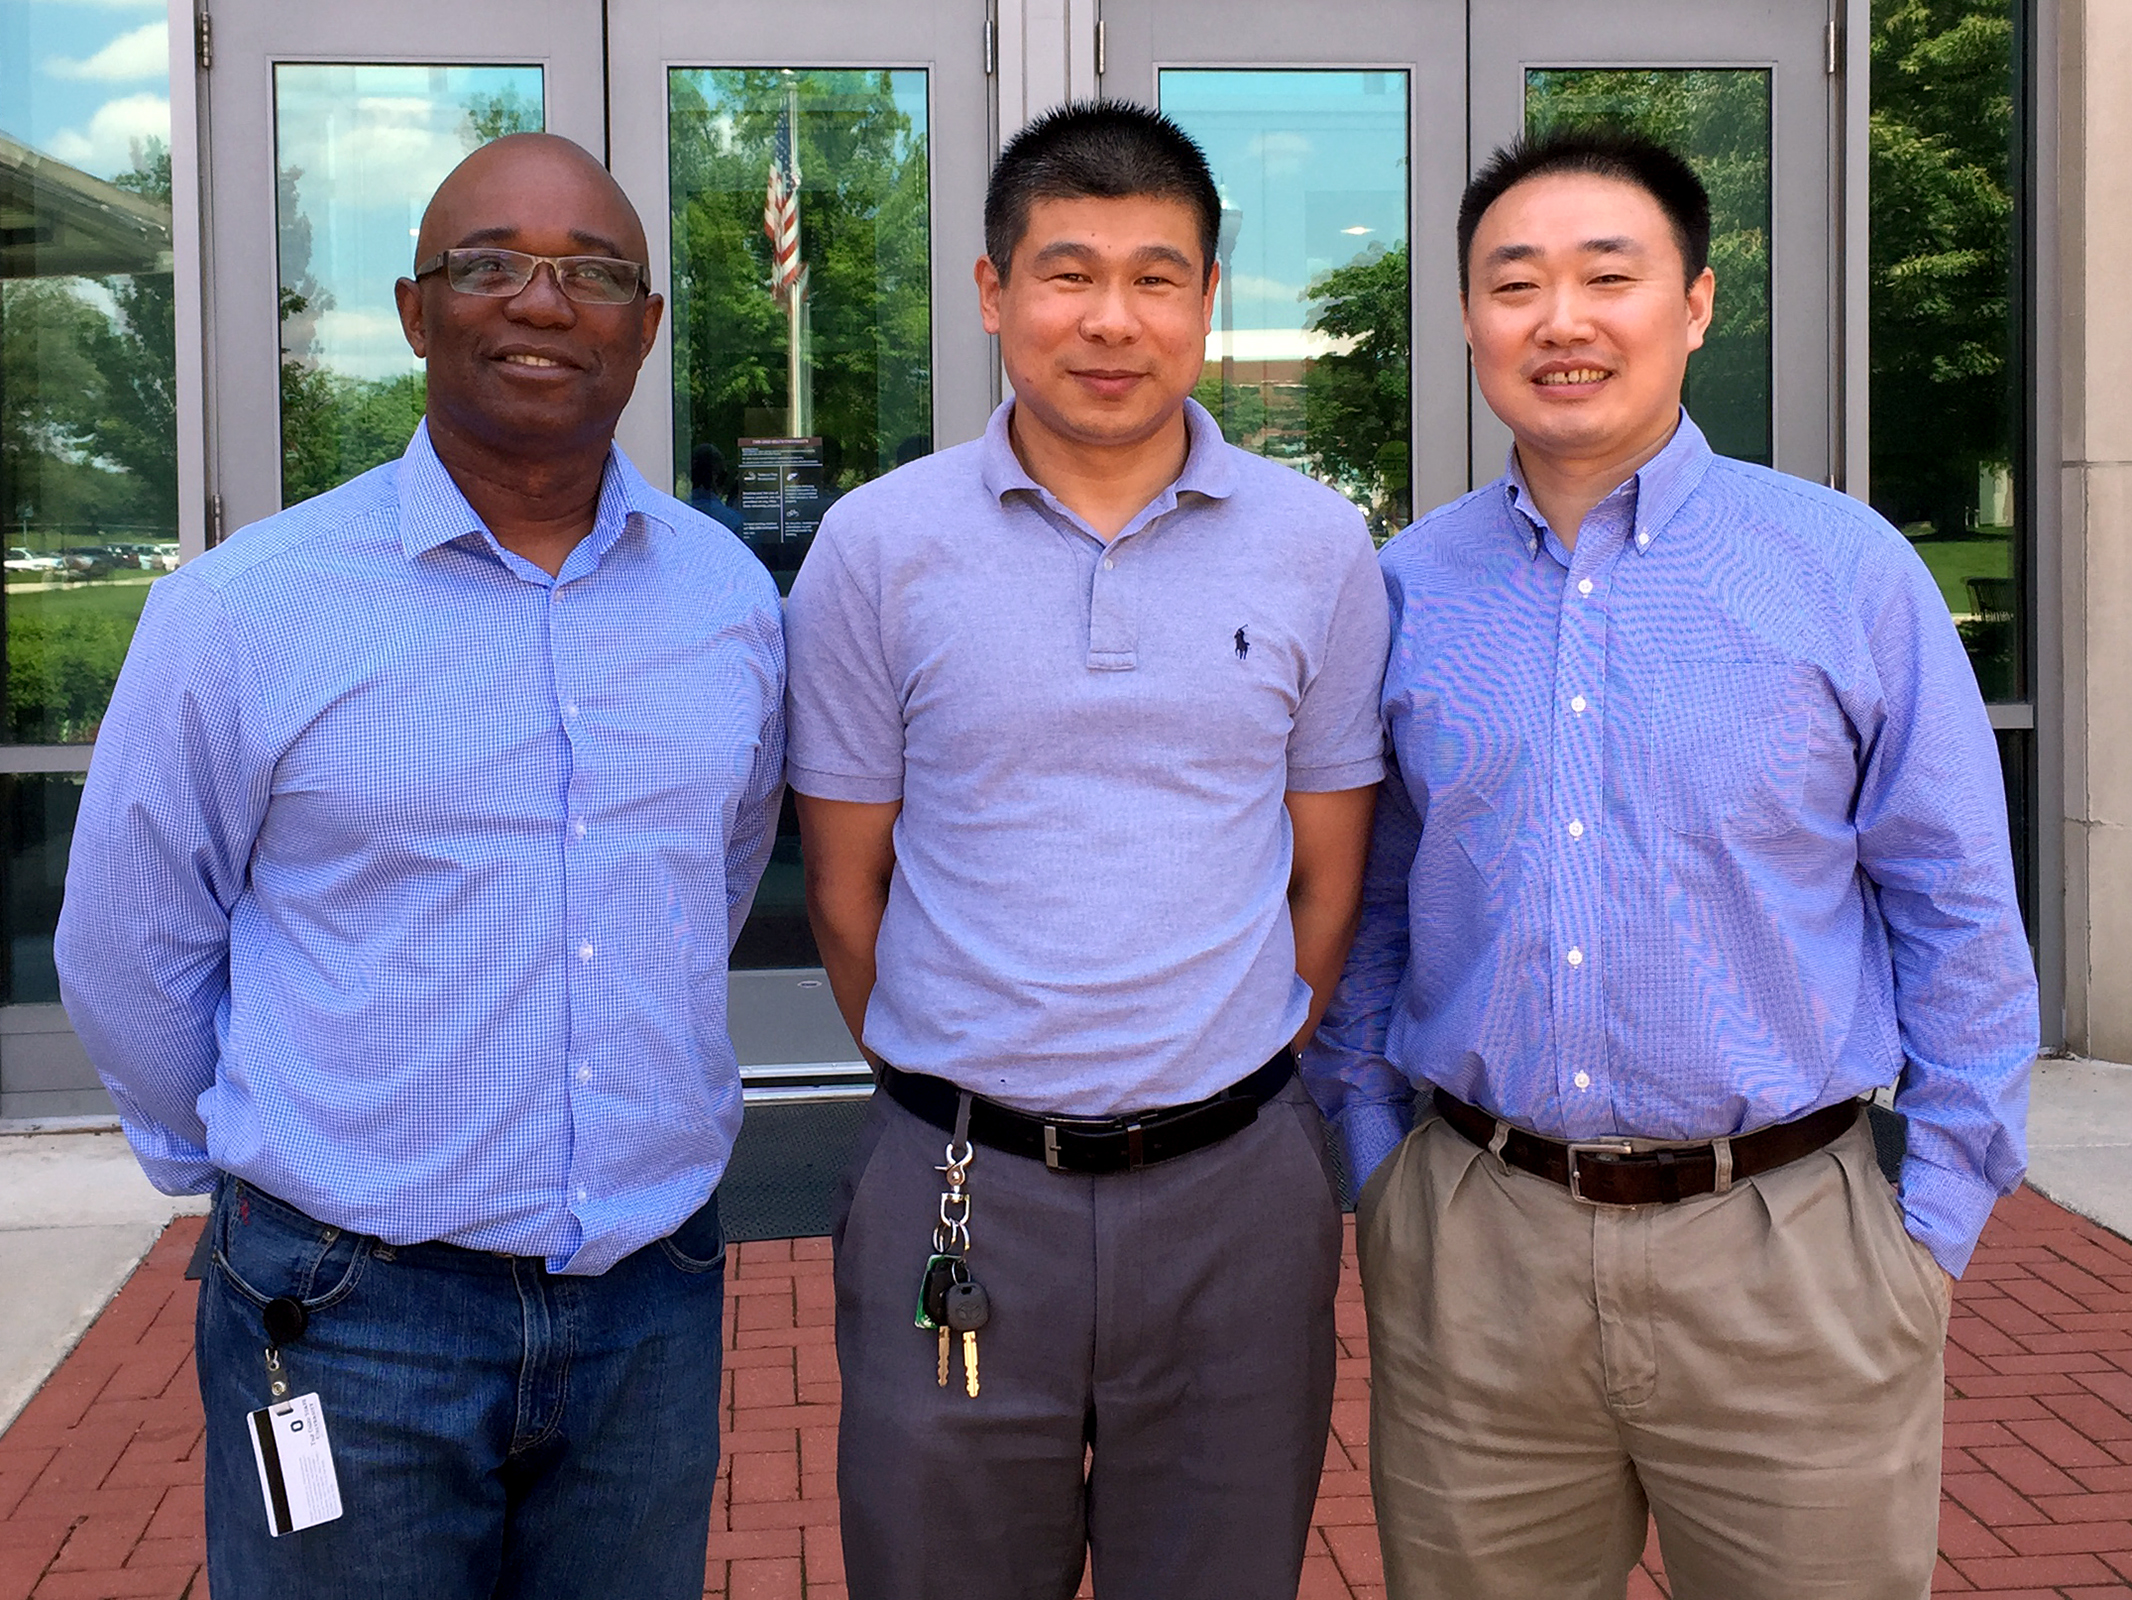 From left: Dr. Prosper Boyaka, professor of veterinary biosciences at The Ohio State University, Dr. Jianrong Li, associate professor of veterinary biosciences at The Ohio State University, and Dr. Xiaoming He, associate professor at Ohio State's College of Engineering.